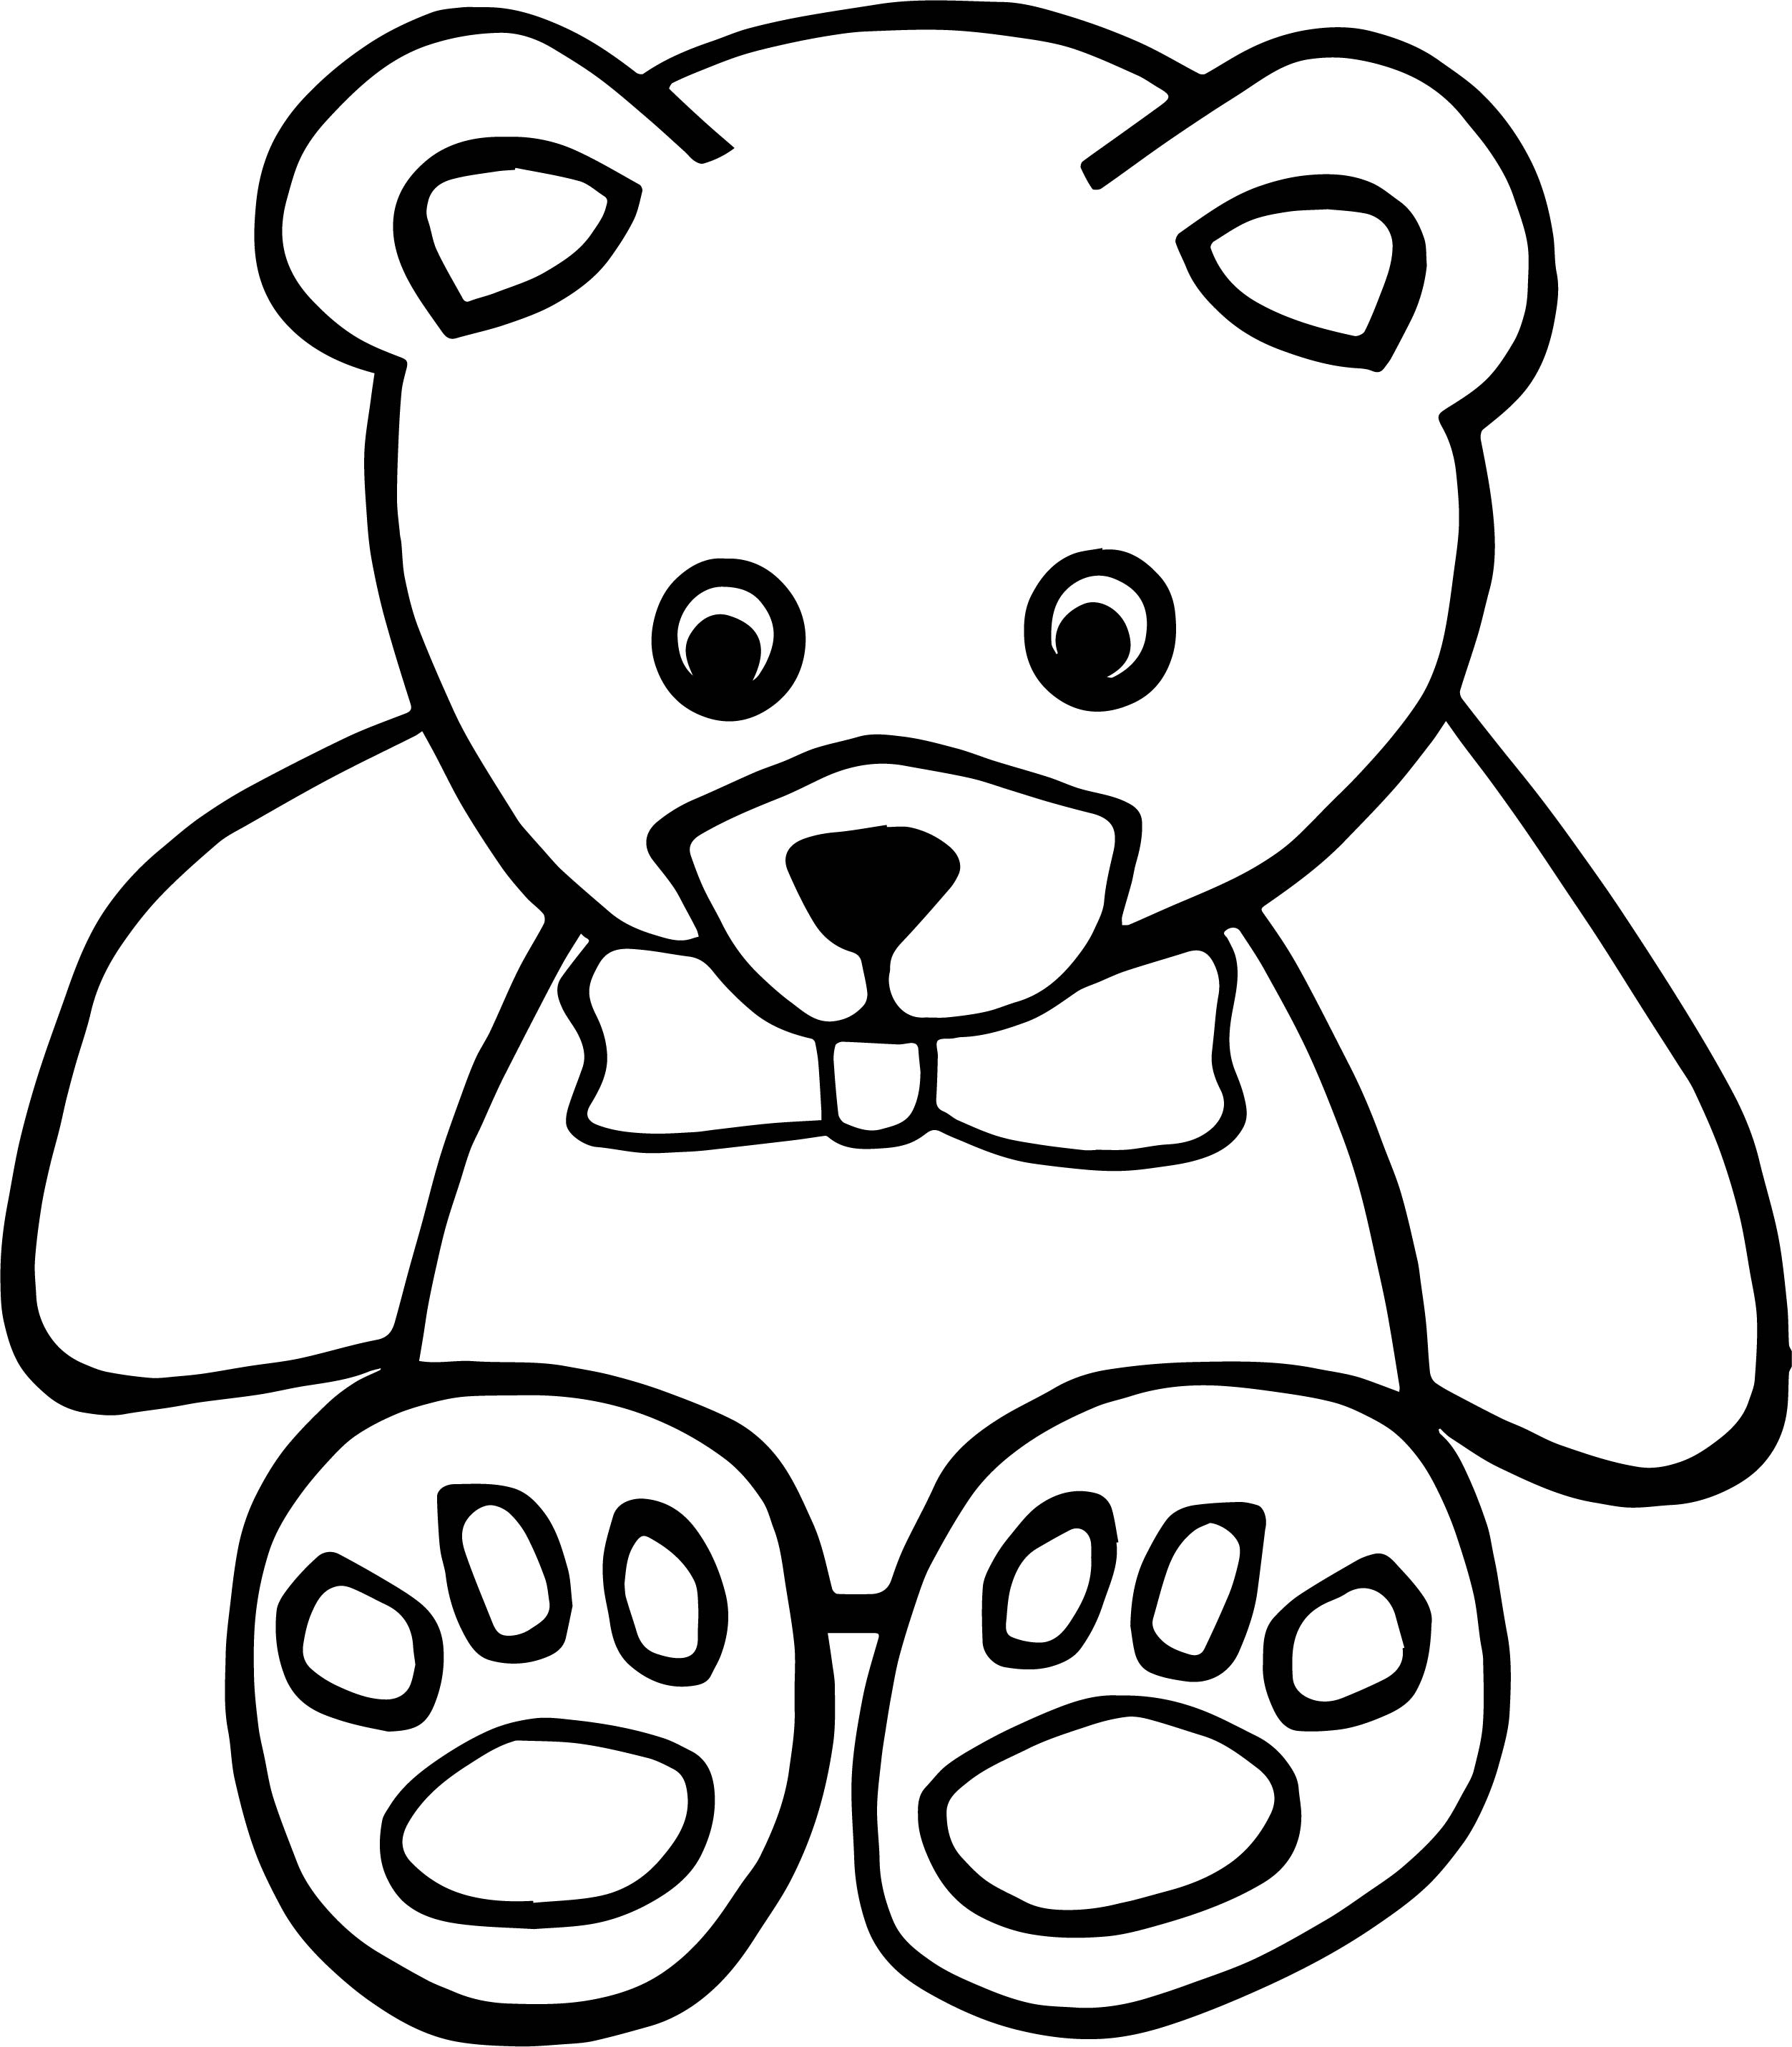 Thinking Of You Coloring Pages Coloring Pages